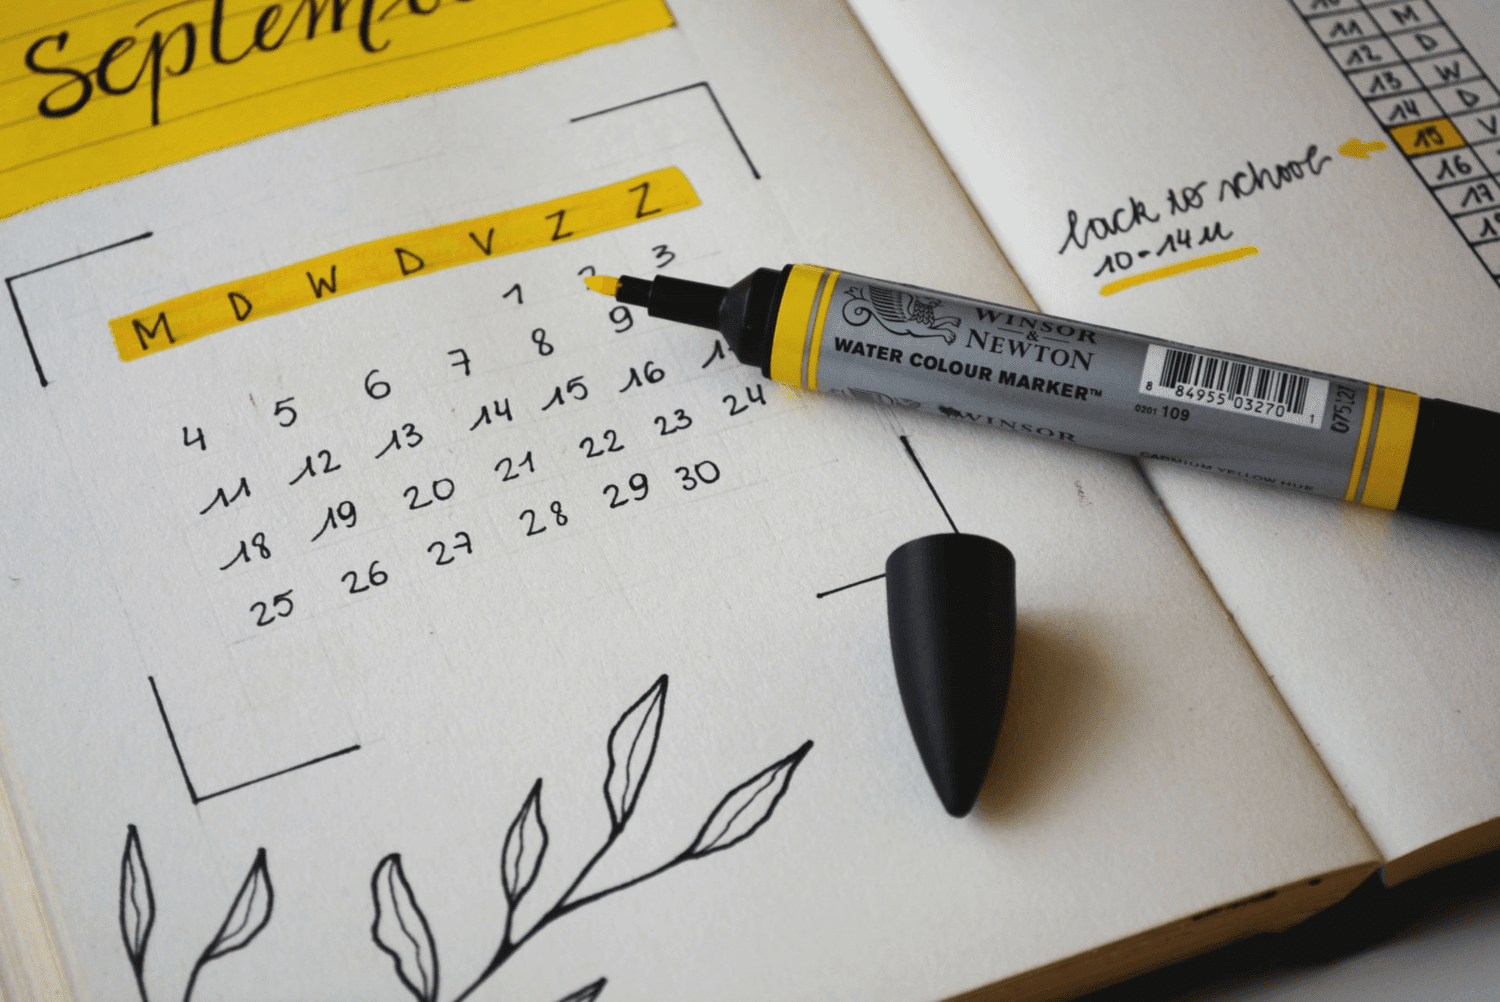 Calendar showing setting up your freelance schedule